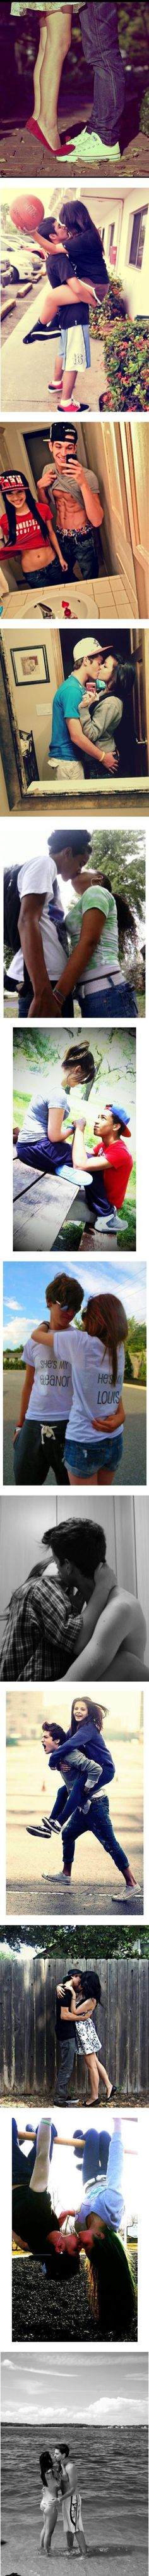 Le Cute Couples 3 by hes-to-purdy-for-you liked on Polyvore